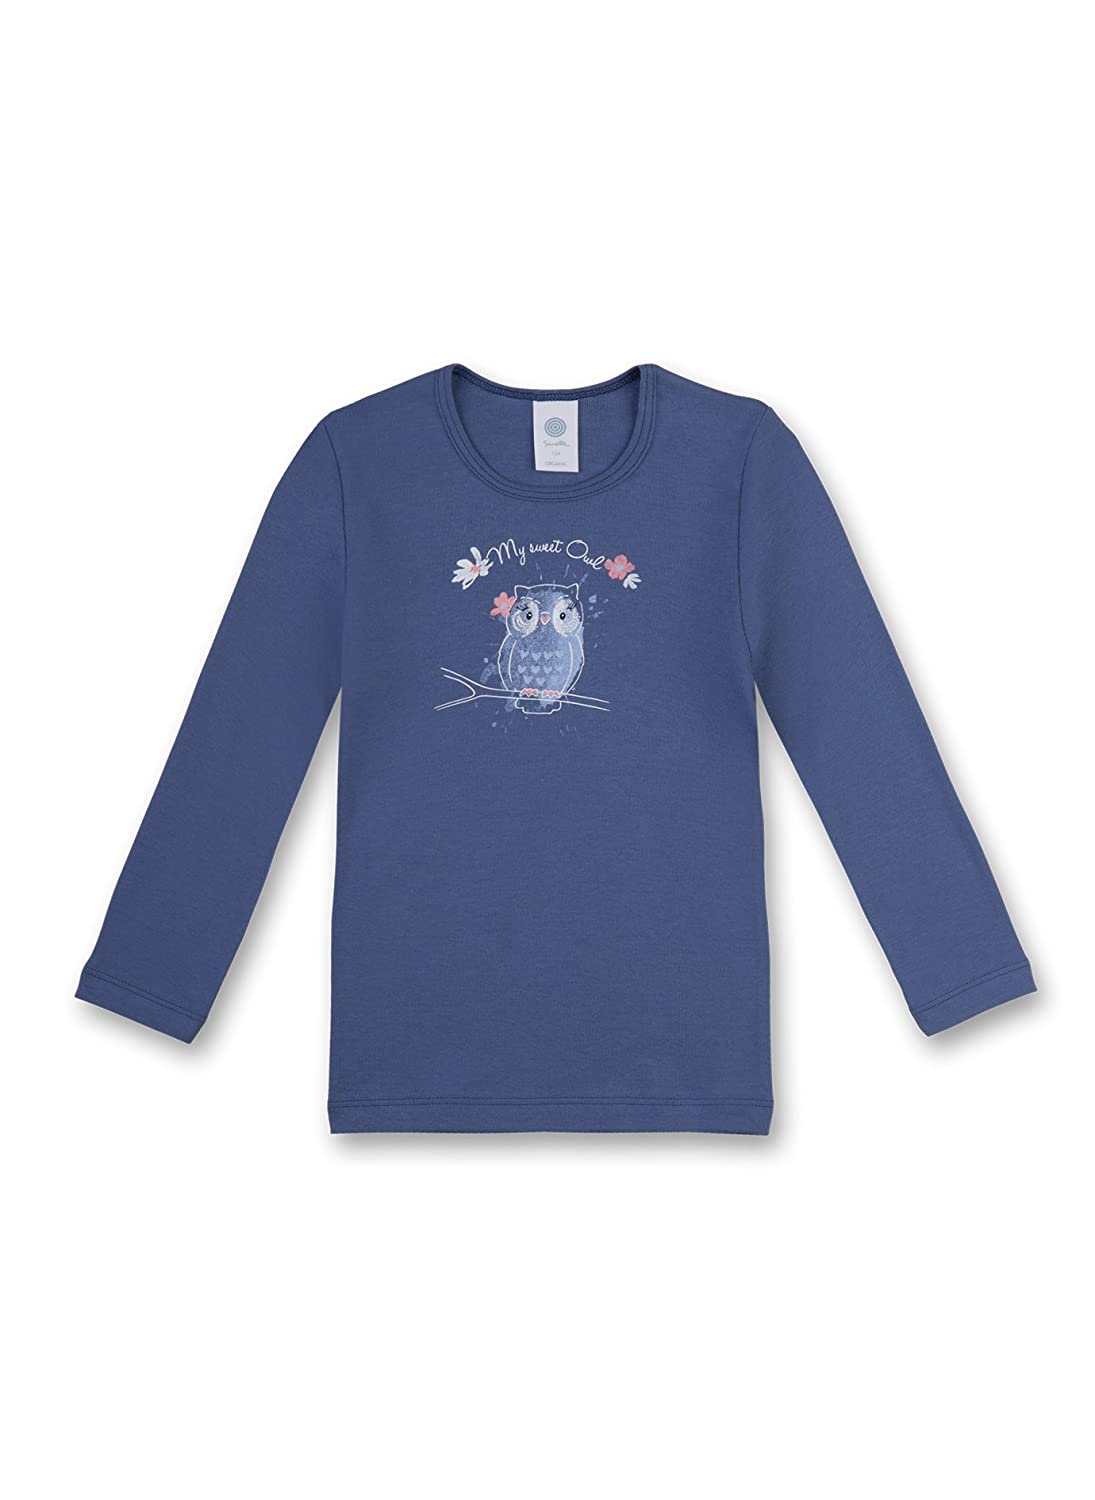 Sanetta Girl's Thermal Top 333804